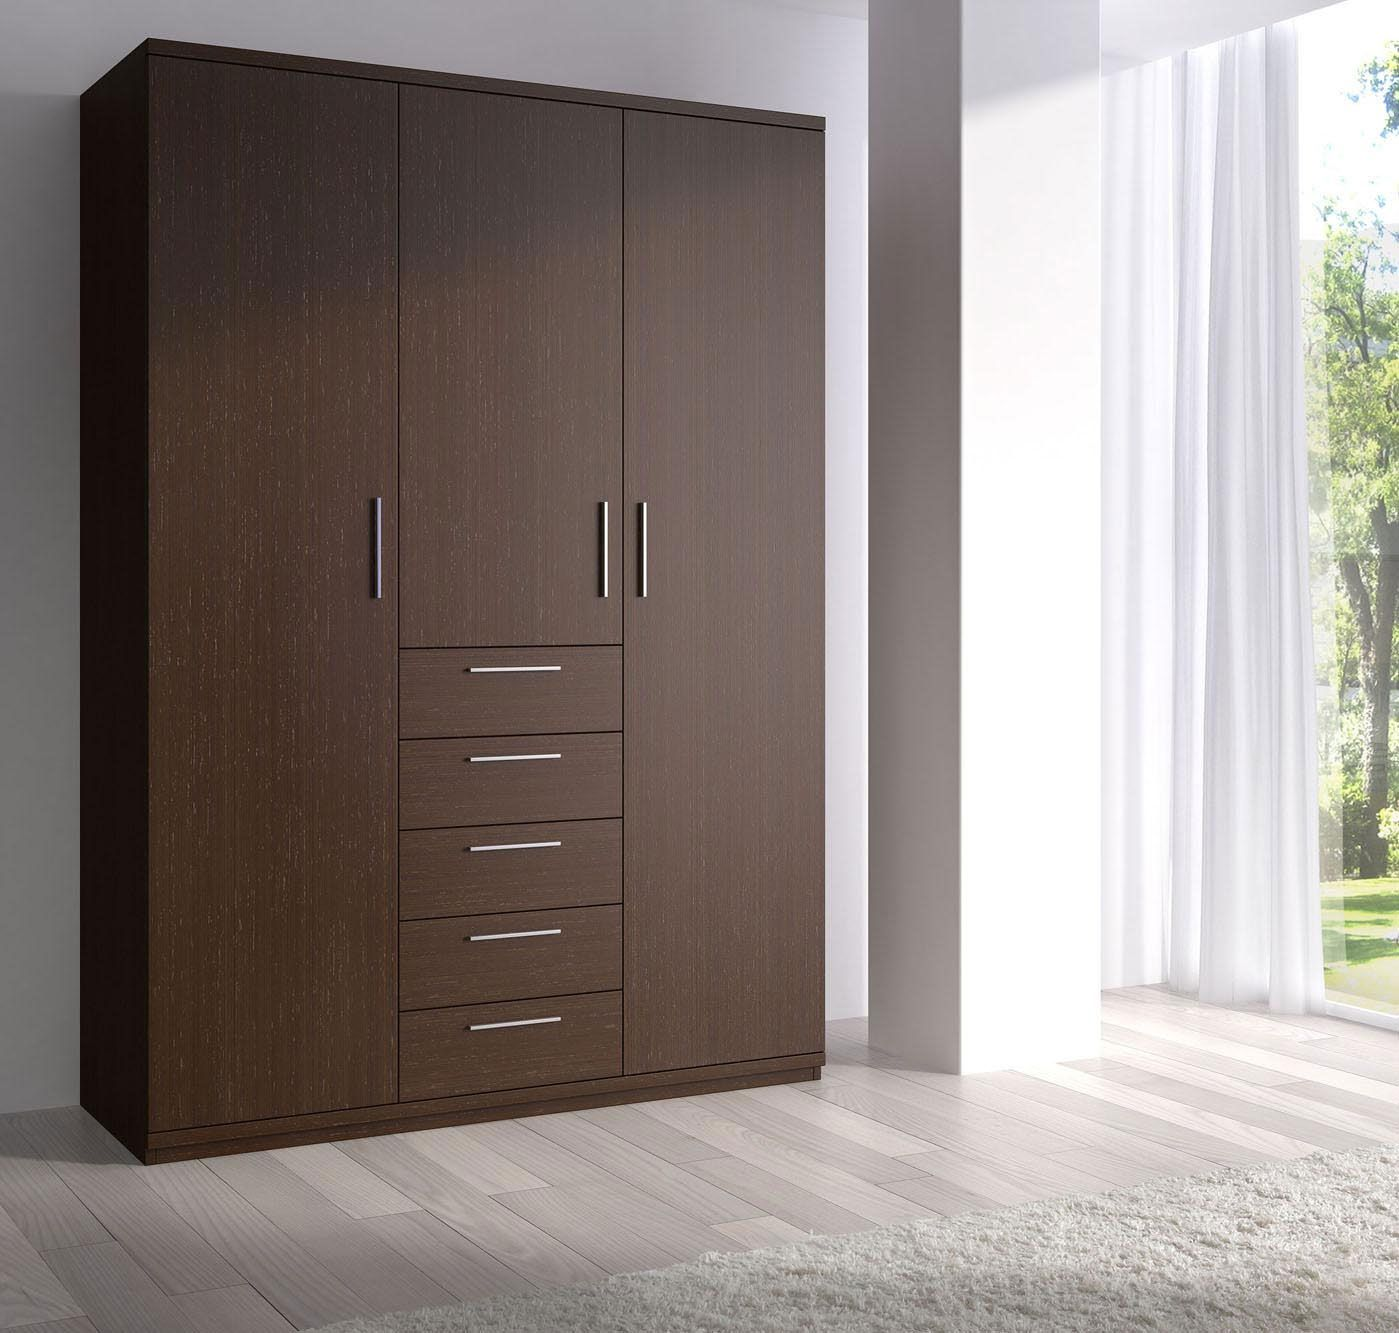 bedroom classy wooden closet wardrobe ideas with modern design for modern bedroom cool and - Designs For Wardrobes In Bedrooms